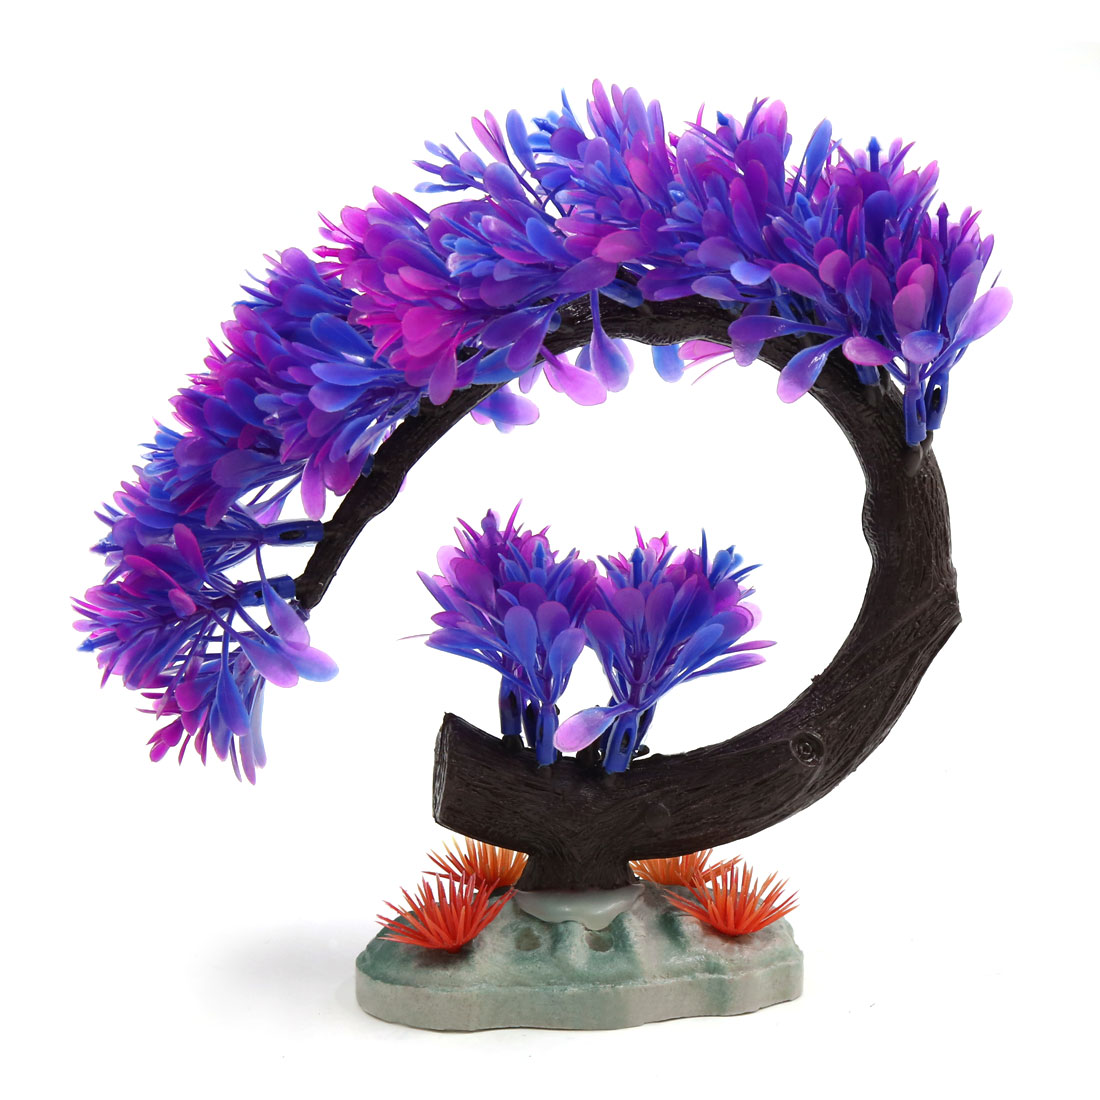 Purple Plastic Tree Decoration Aquarium Fish Tank Landscaping Ornament Decor